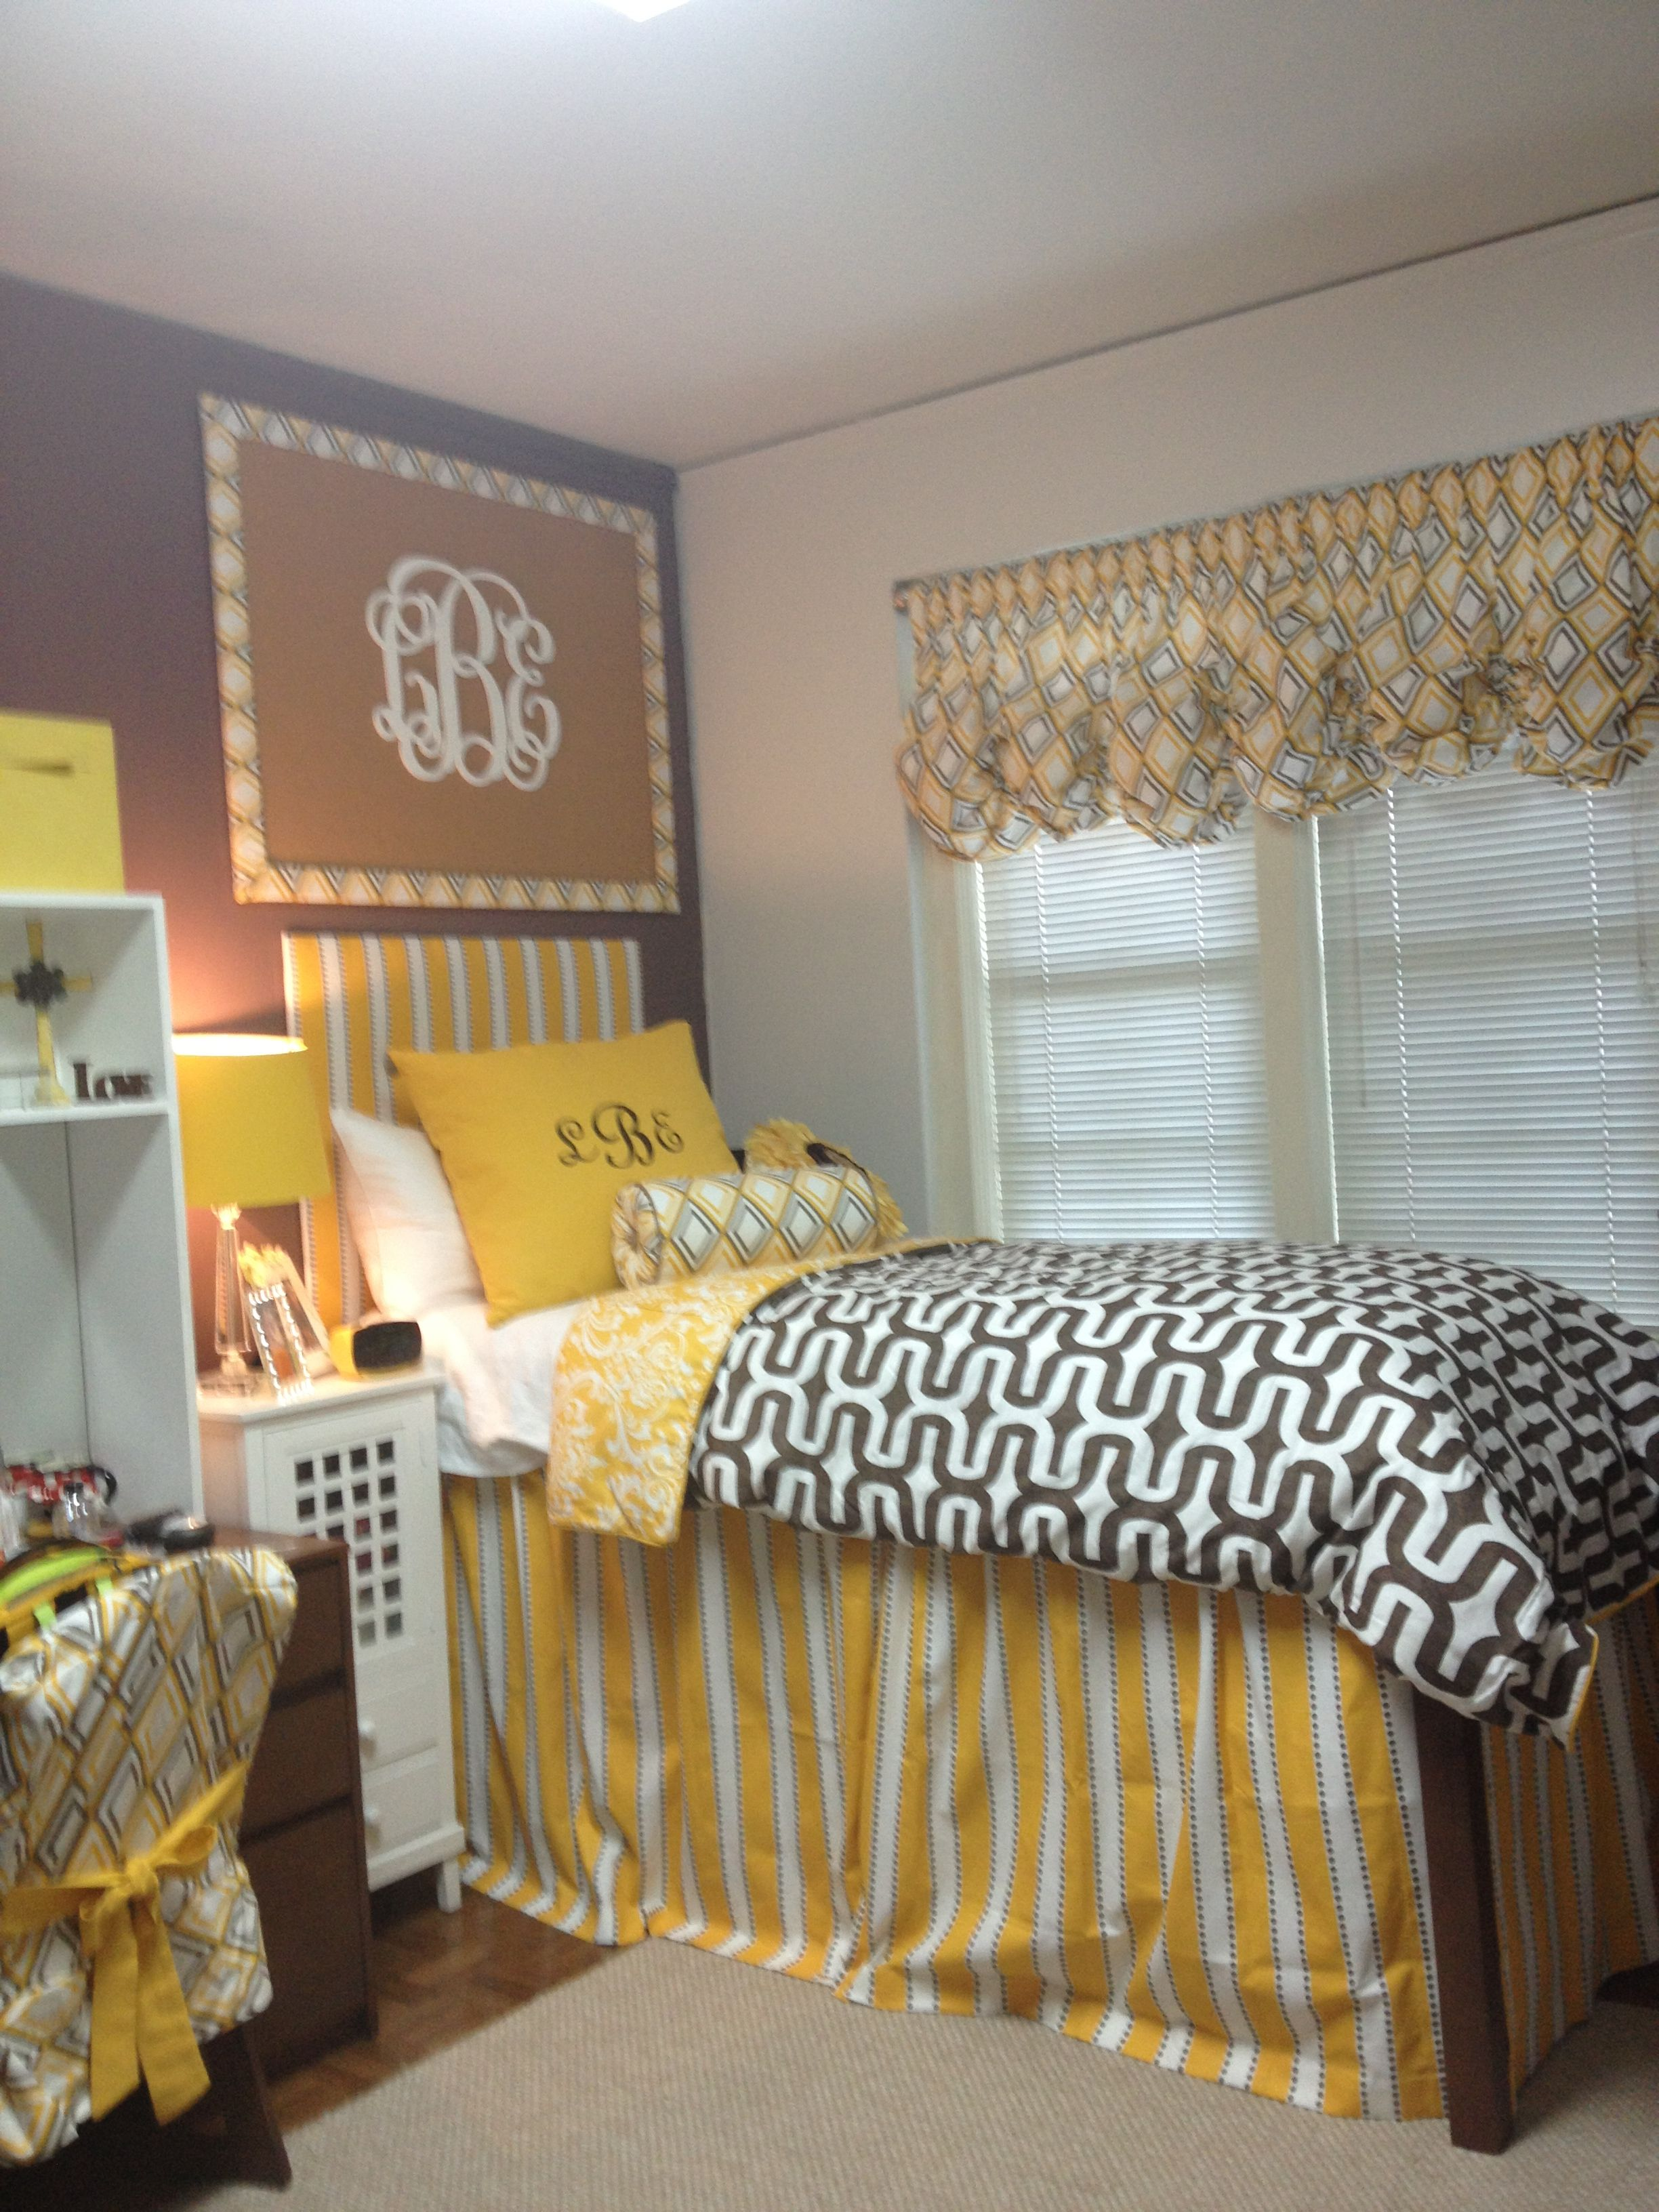 Small Dorm Room: Dorm Room That Looks So Pretty Using Lots Of Fabric To